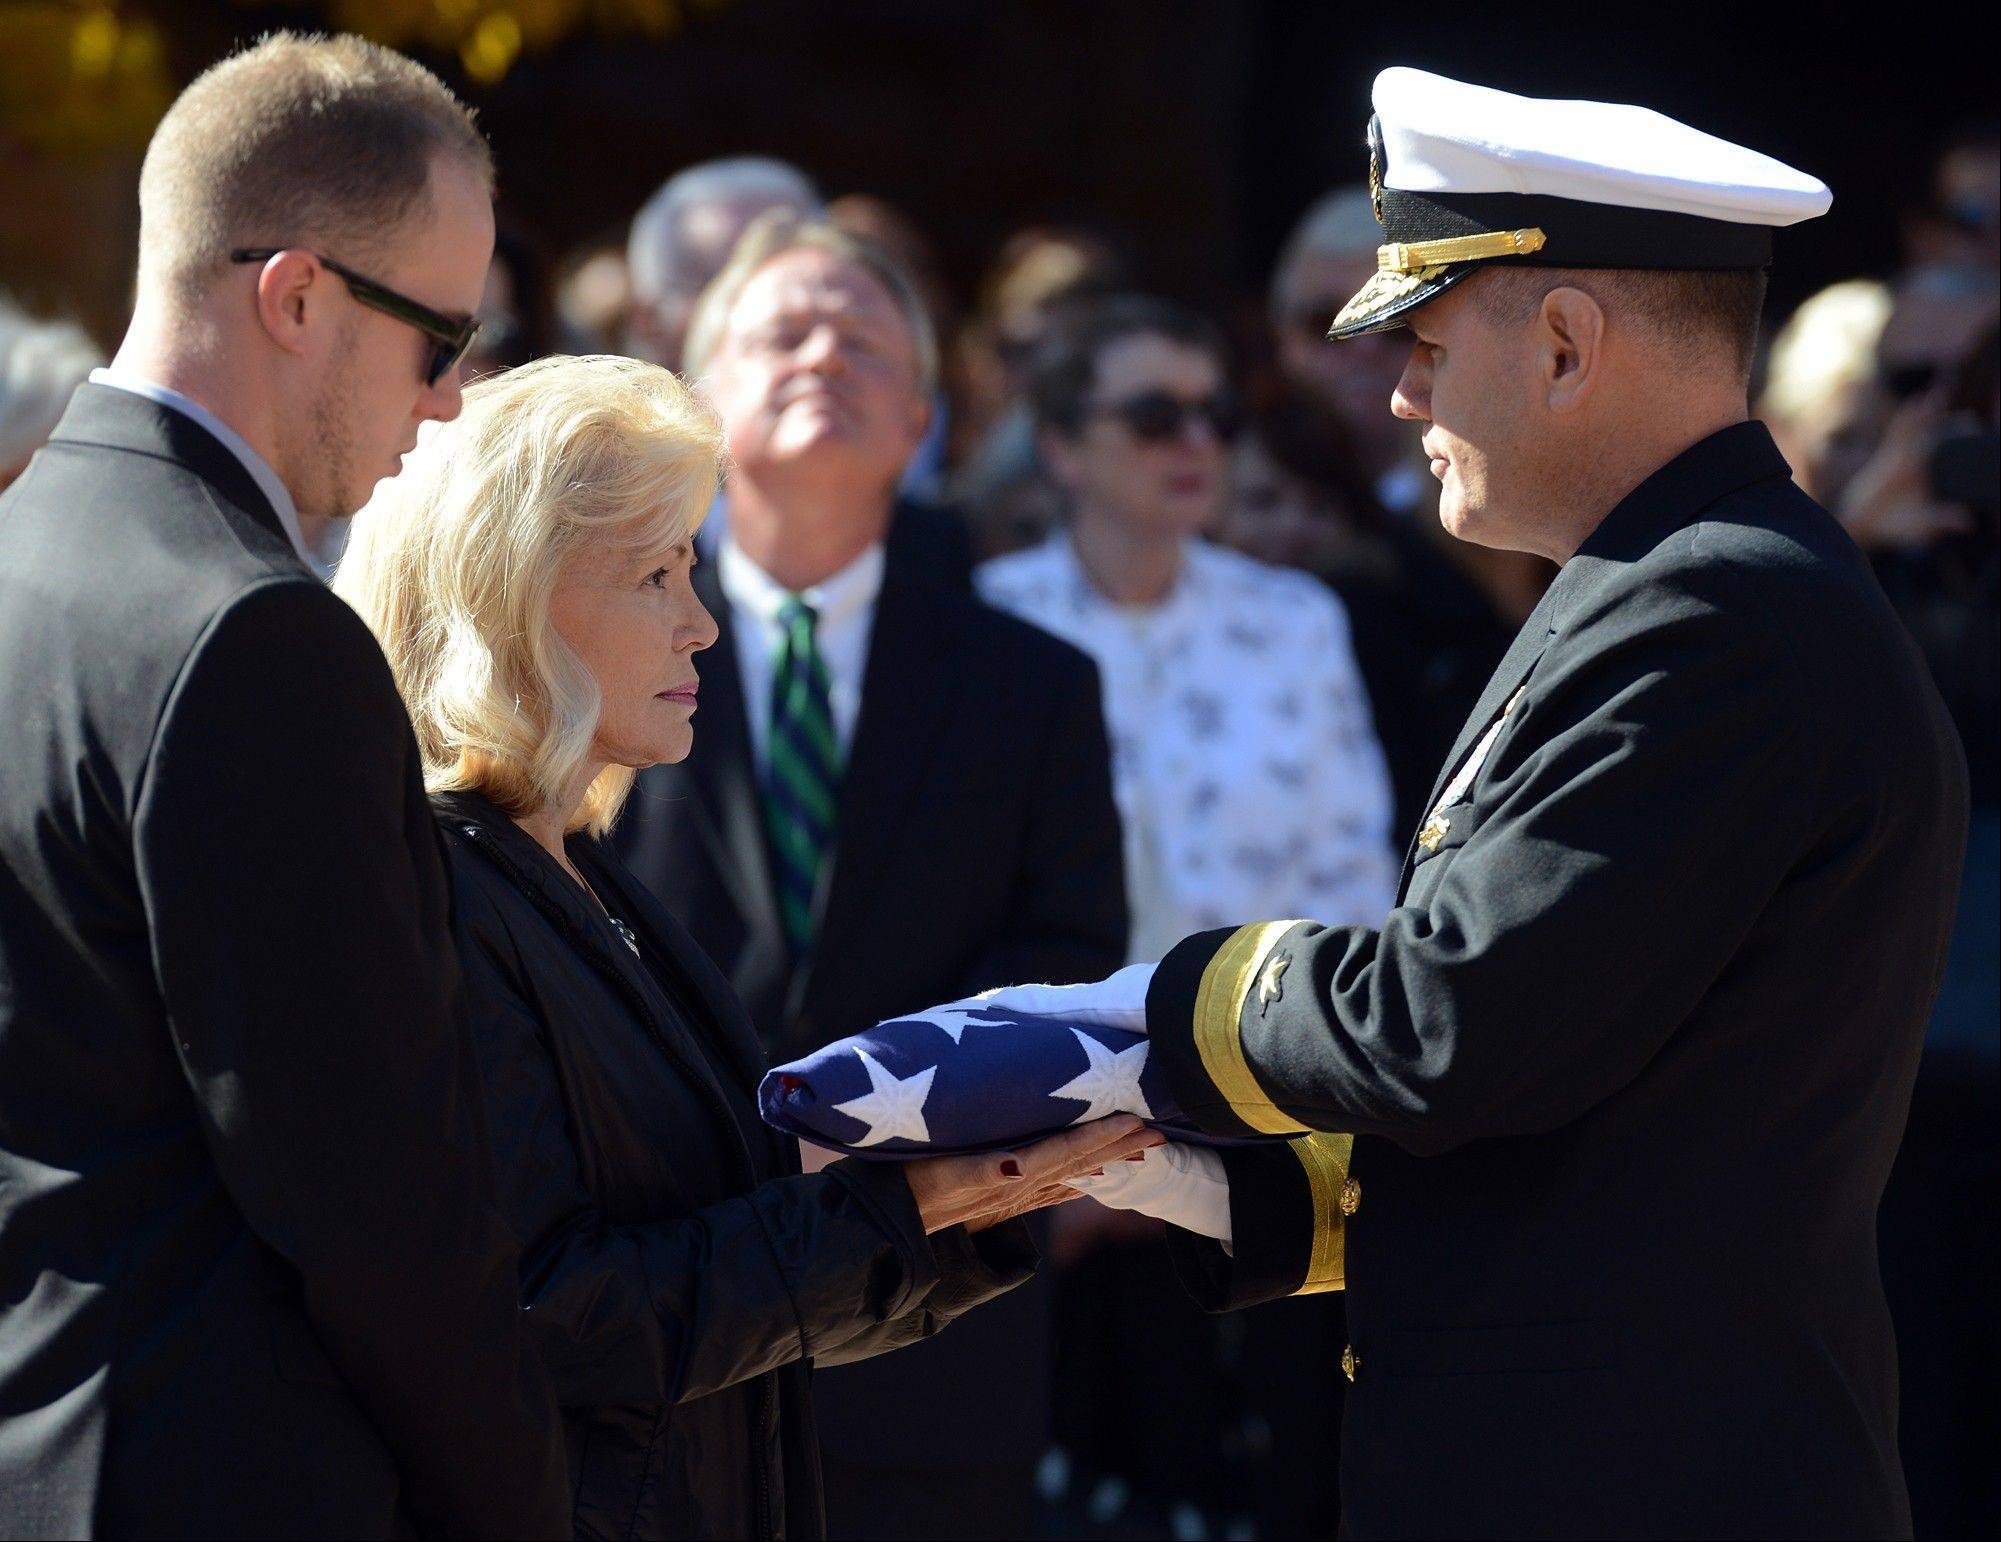 Patty Carpenter, left, receives the flag that was draped over her husband, astronaut Scott Carpenter�s casket from U.S. Navy Rear Adm. Thomas Bond on Saturday, Nov. 2, 2013, in Boulder, Colo. Carpenter was the second American to orbit the Earth, following John Glenn.